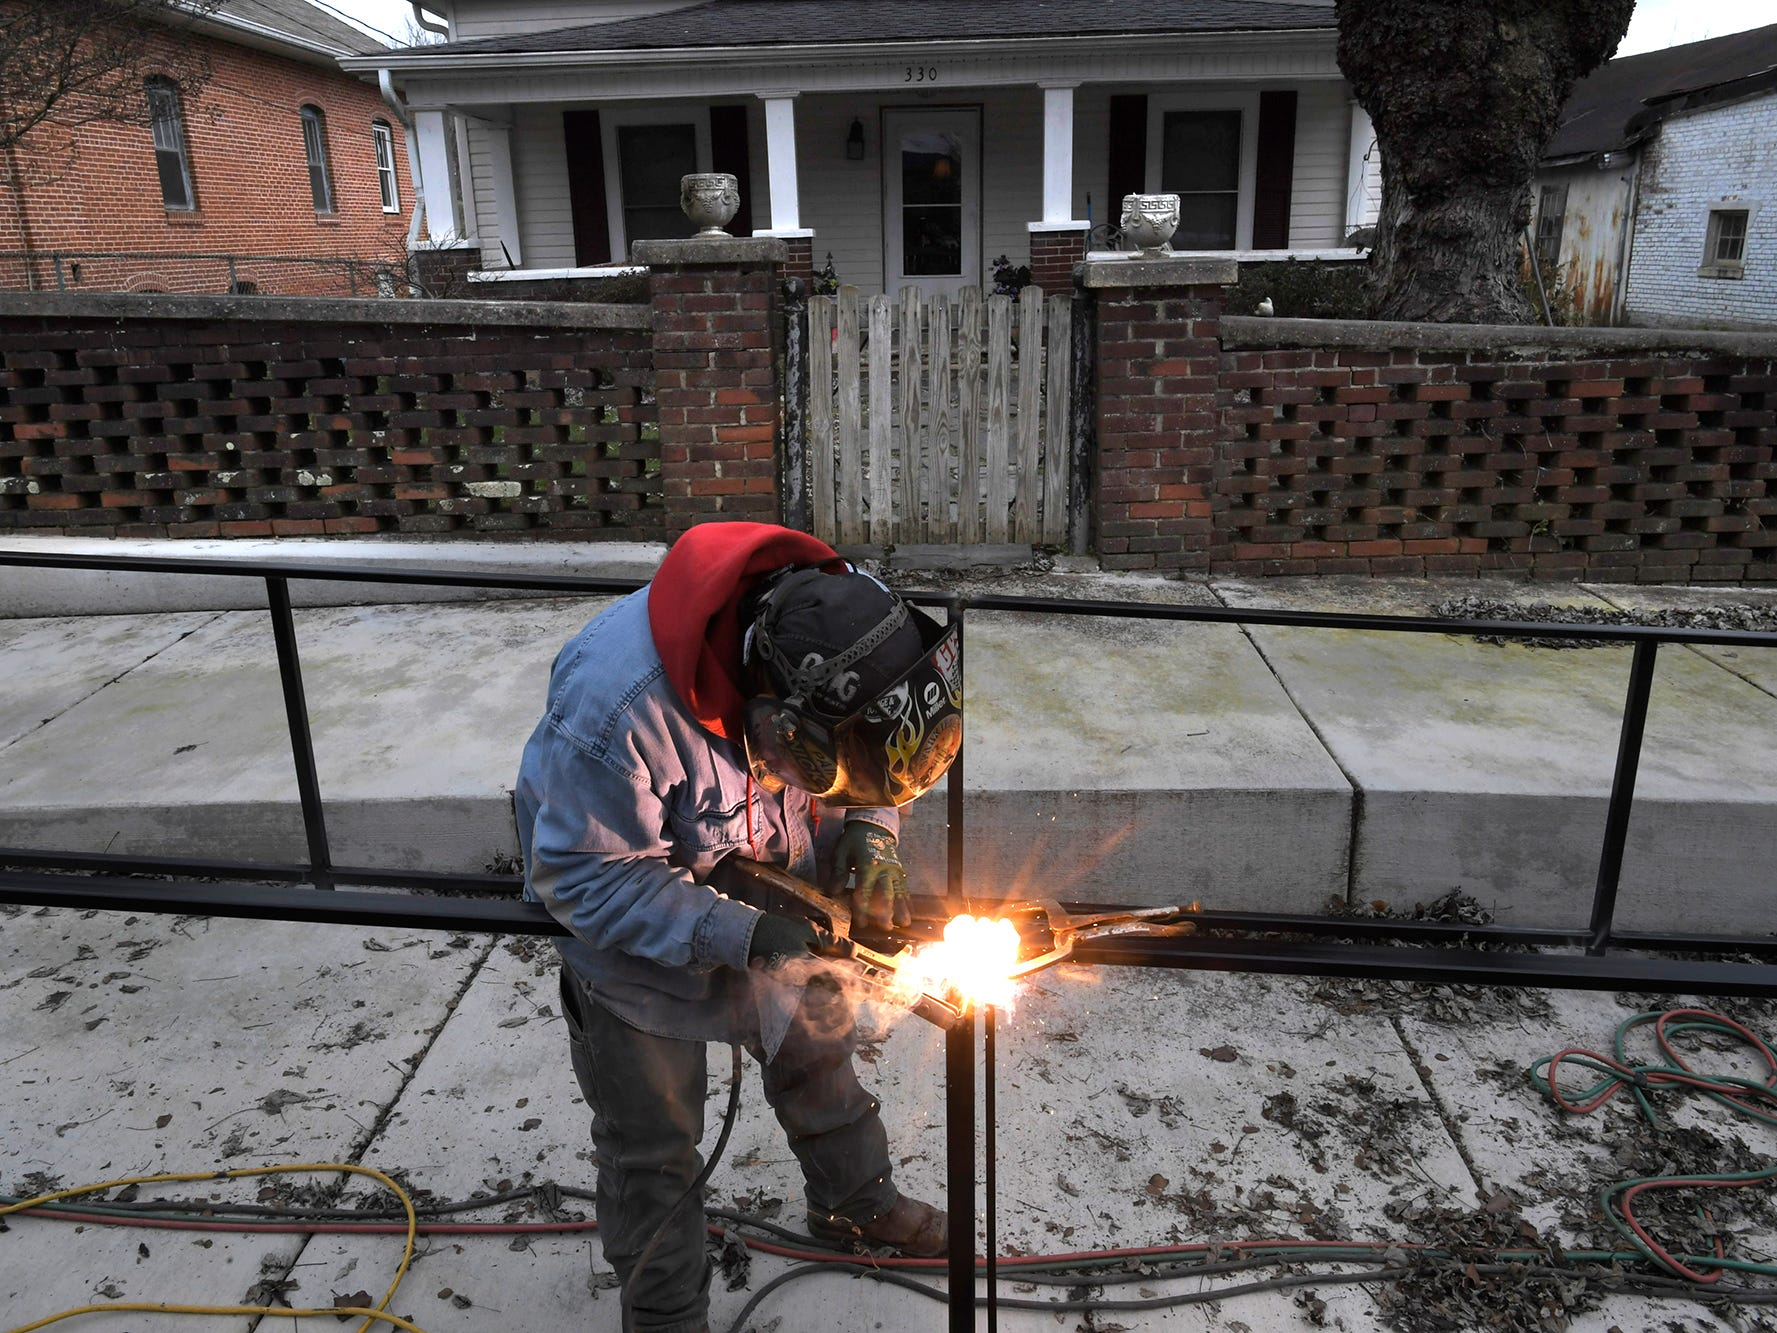 Carlos Peinado welds sidewalk railings in downtown Ducktown on Dec. 4, 2018. The town recieved a grant to upgrade its to sidewalks, landscaping, signage and pedestrian lighting.